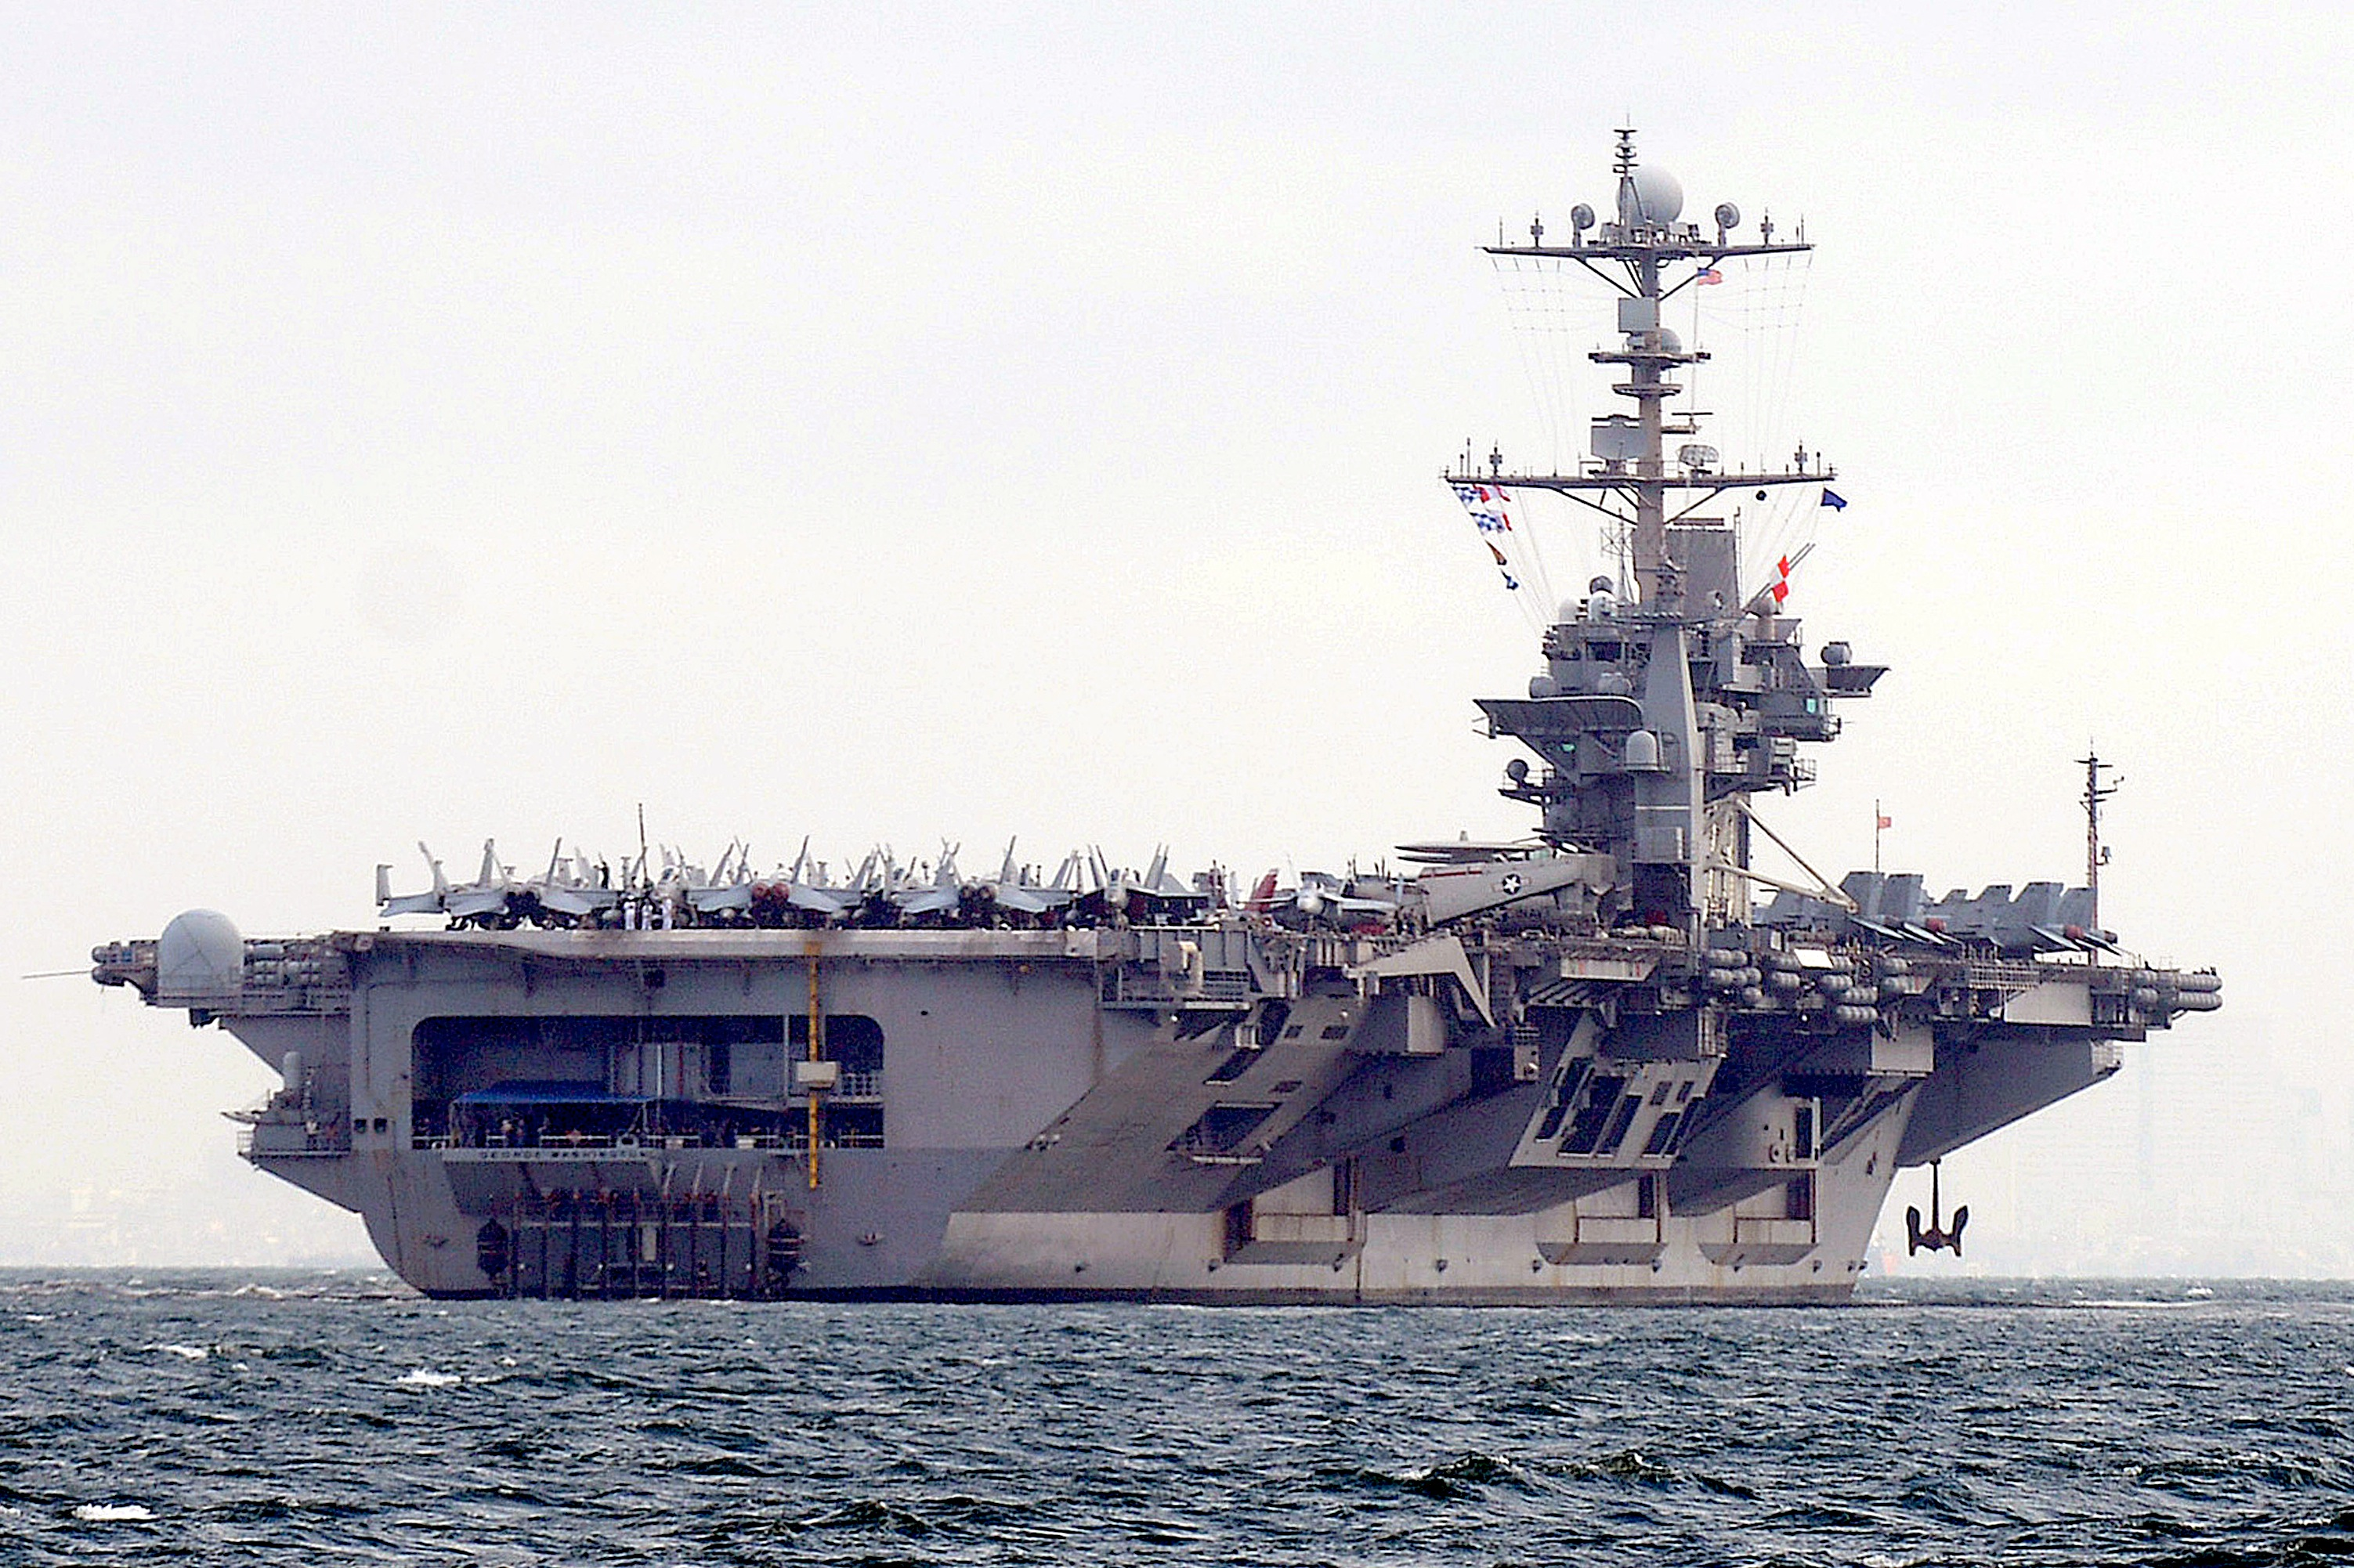 The USS George Washington in the Philippines in 2012.